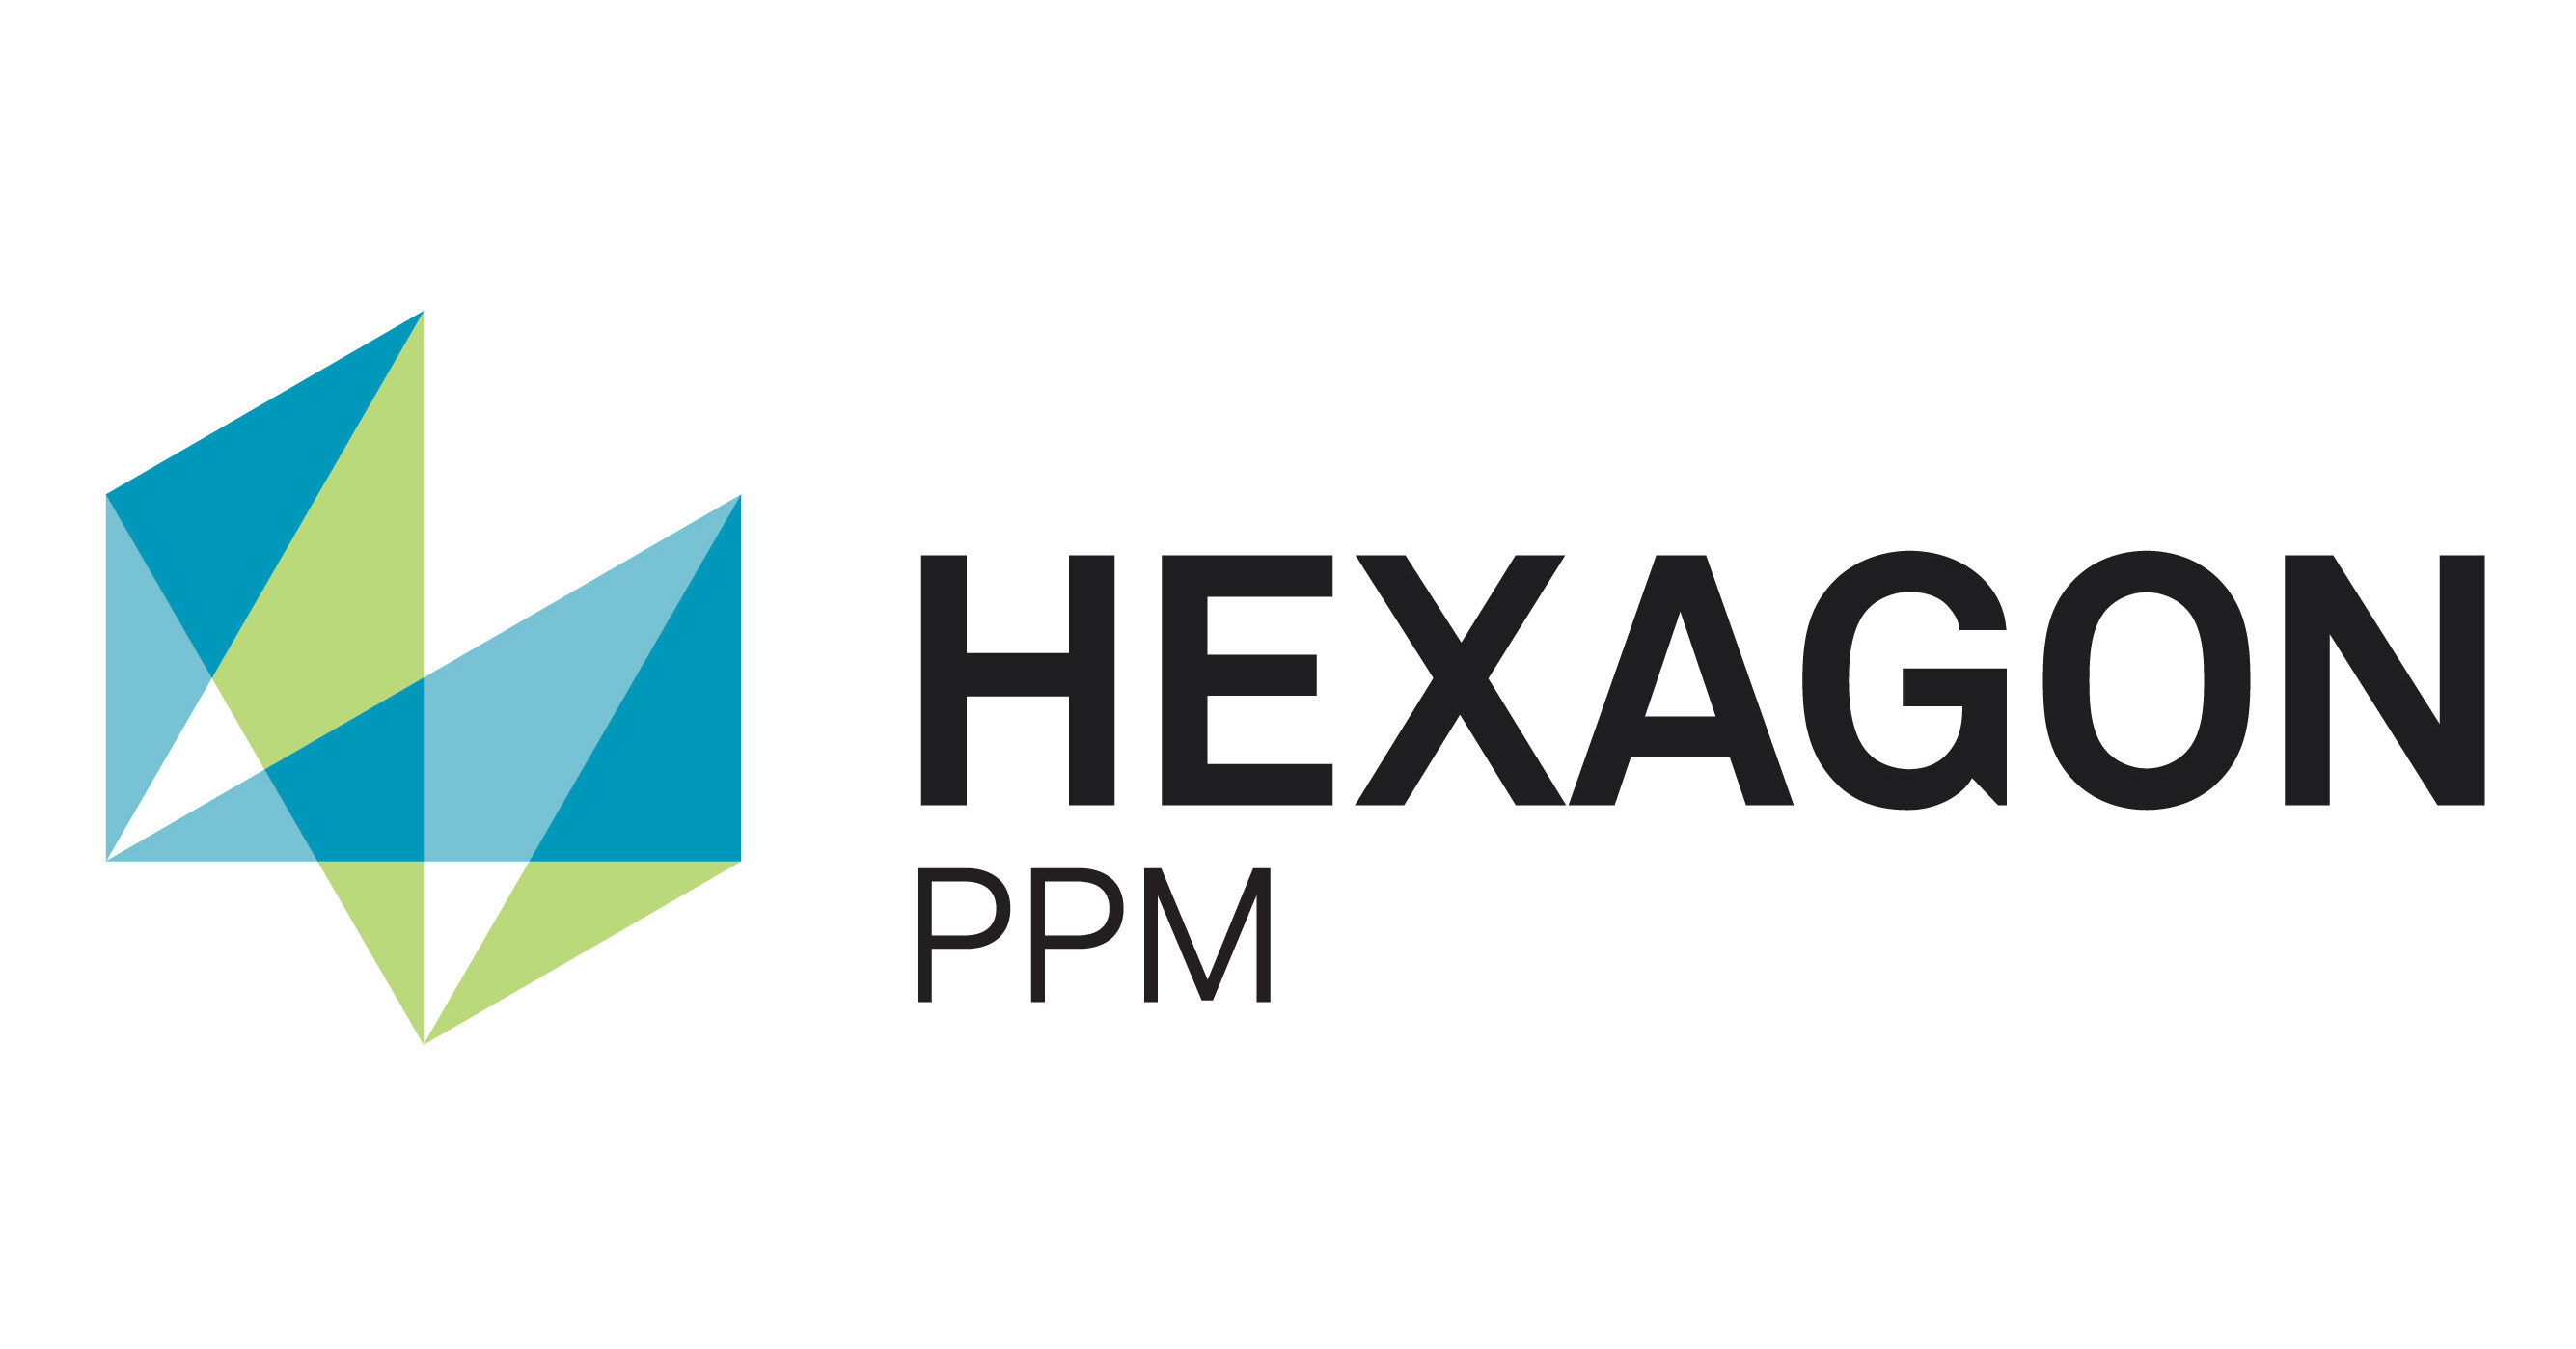 Hexagon Ppm Is The New Brand For Intergraph 174 Process